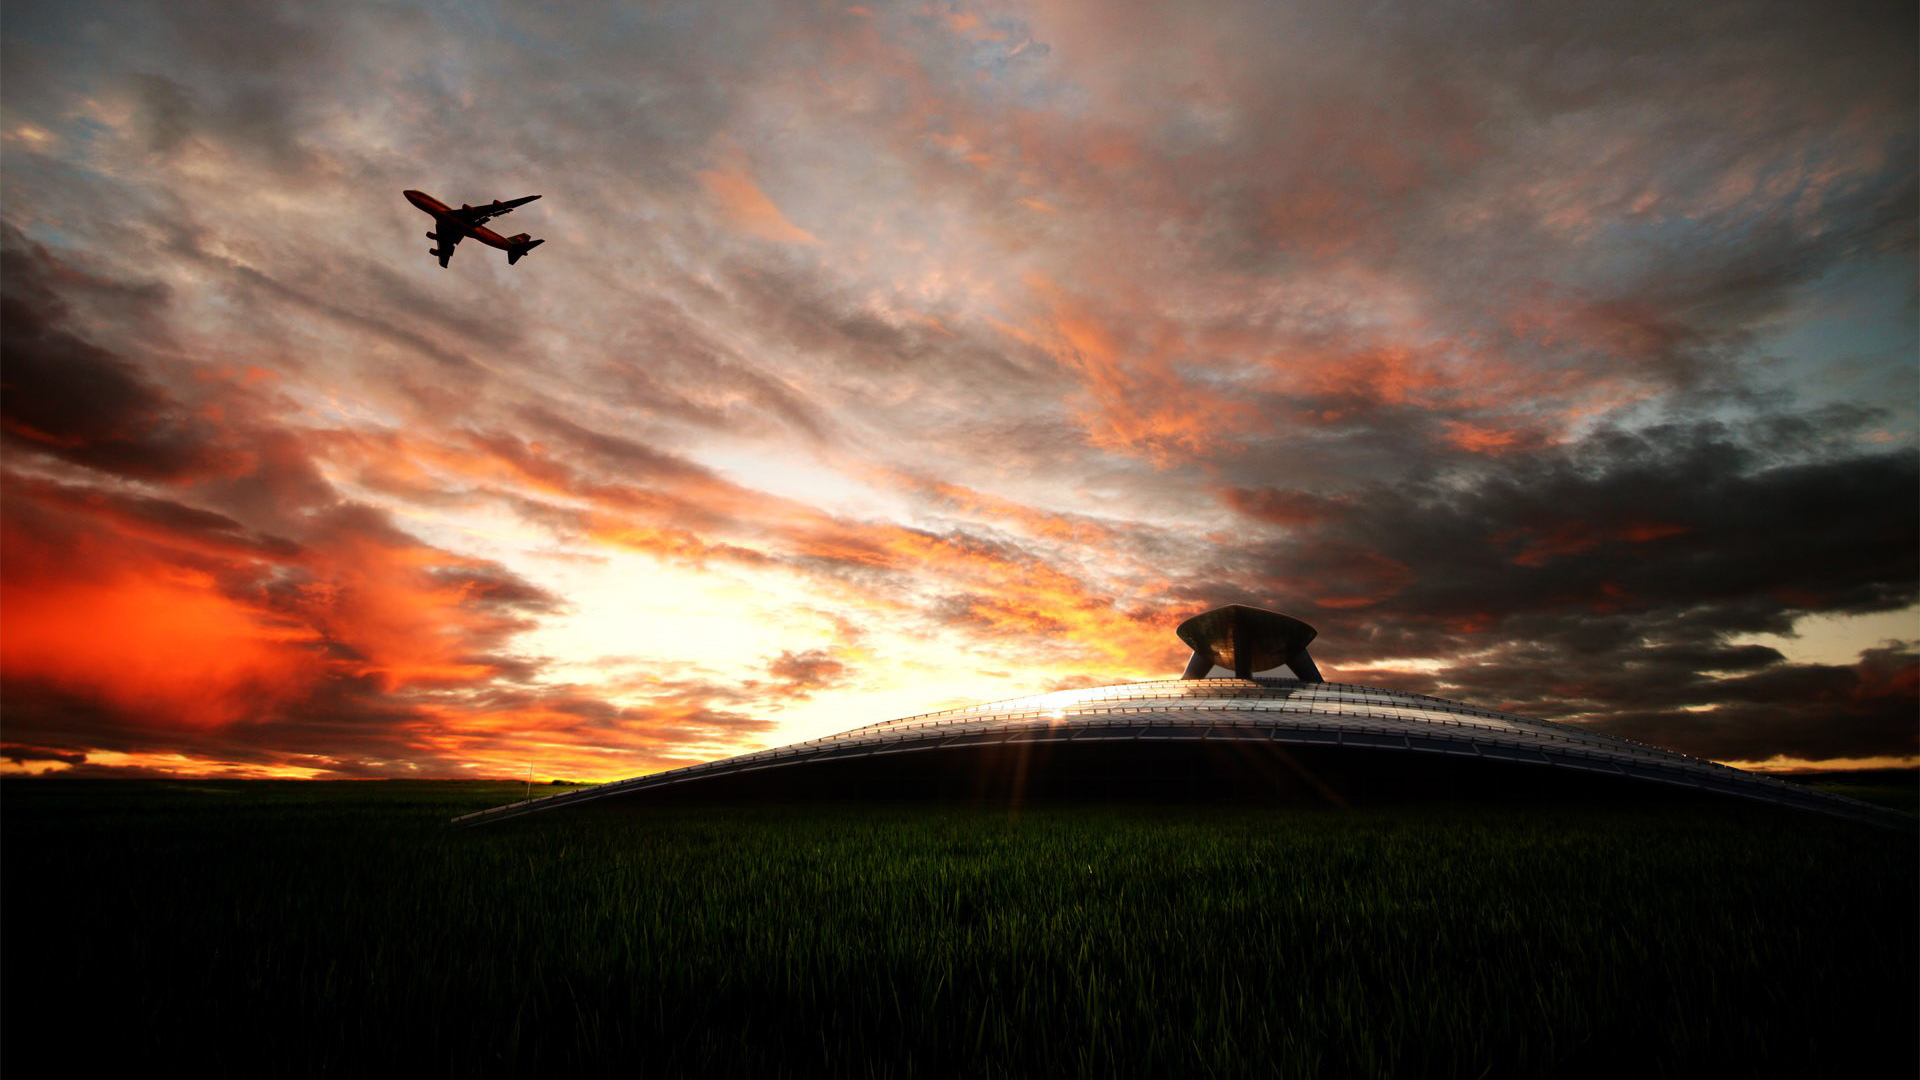 Flight Wallpapers, Photos And Desktop Backgrounds Up To 8K